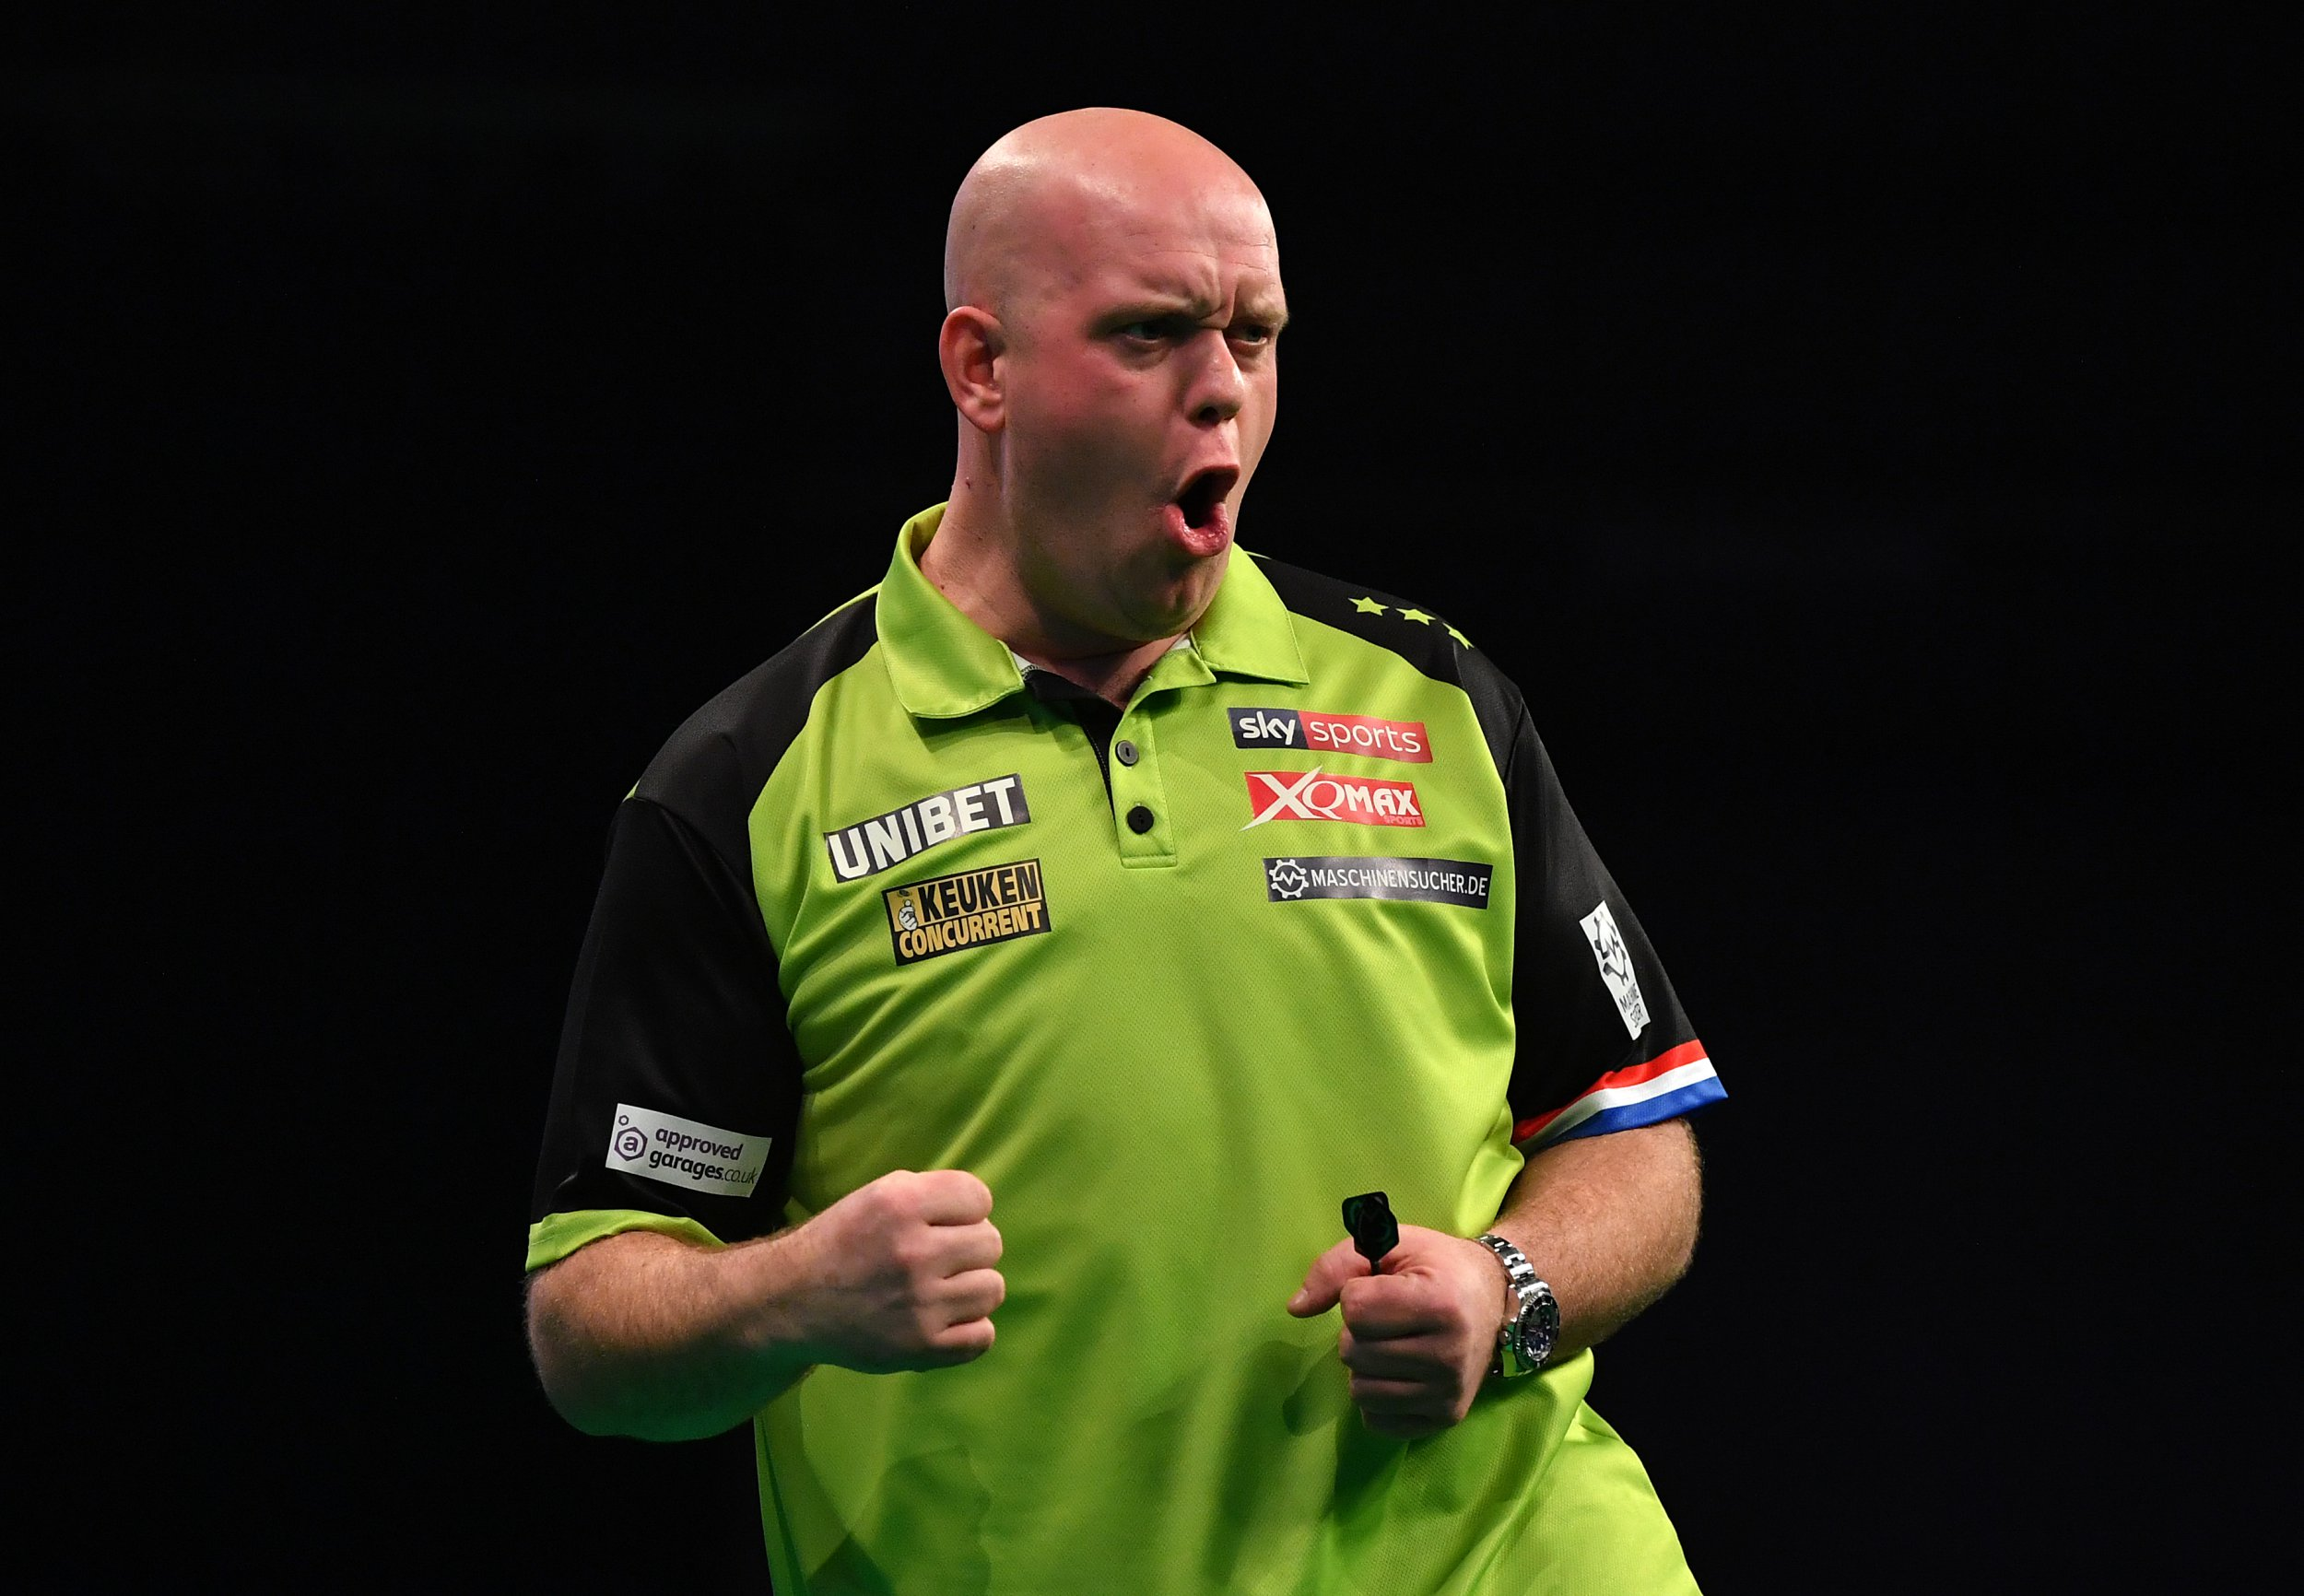 EXETER, ENGLAND - FEBRUARY 28: Michael van Gerwen of the Netherlands reacts against James Wade of Englnd during the 2019 Unibet Premier League Darts at Westpoint Arena on February 28, 2019 in Exeter, England. (Photo by Dan Mullan/Getty Images)